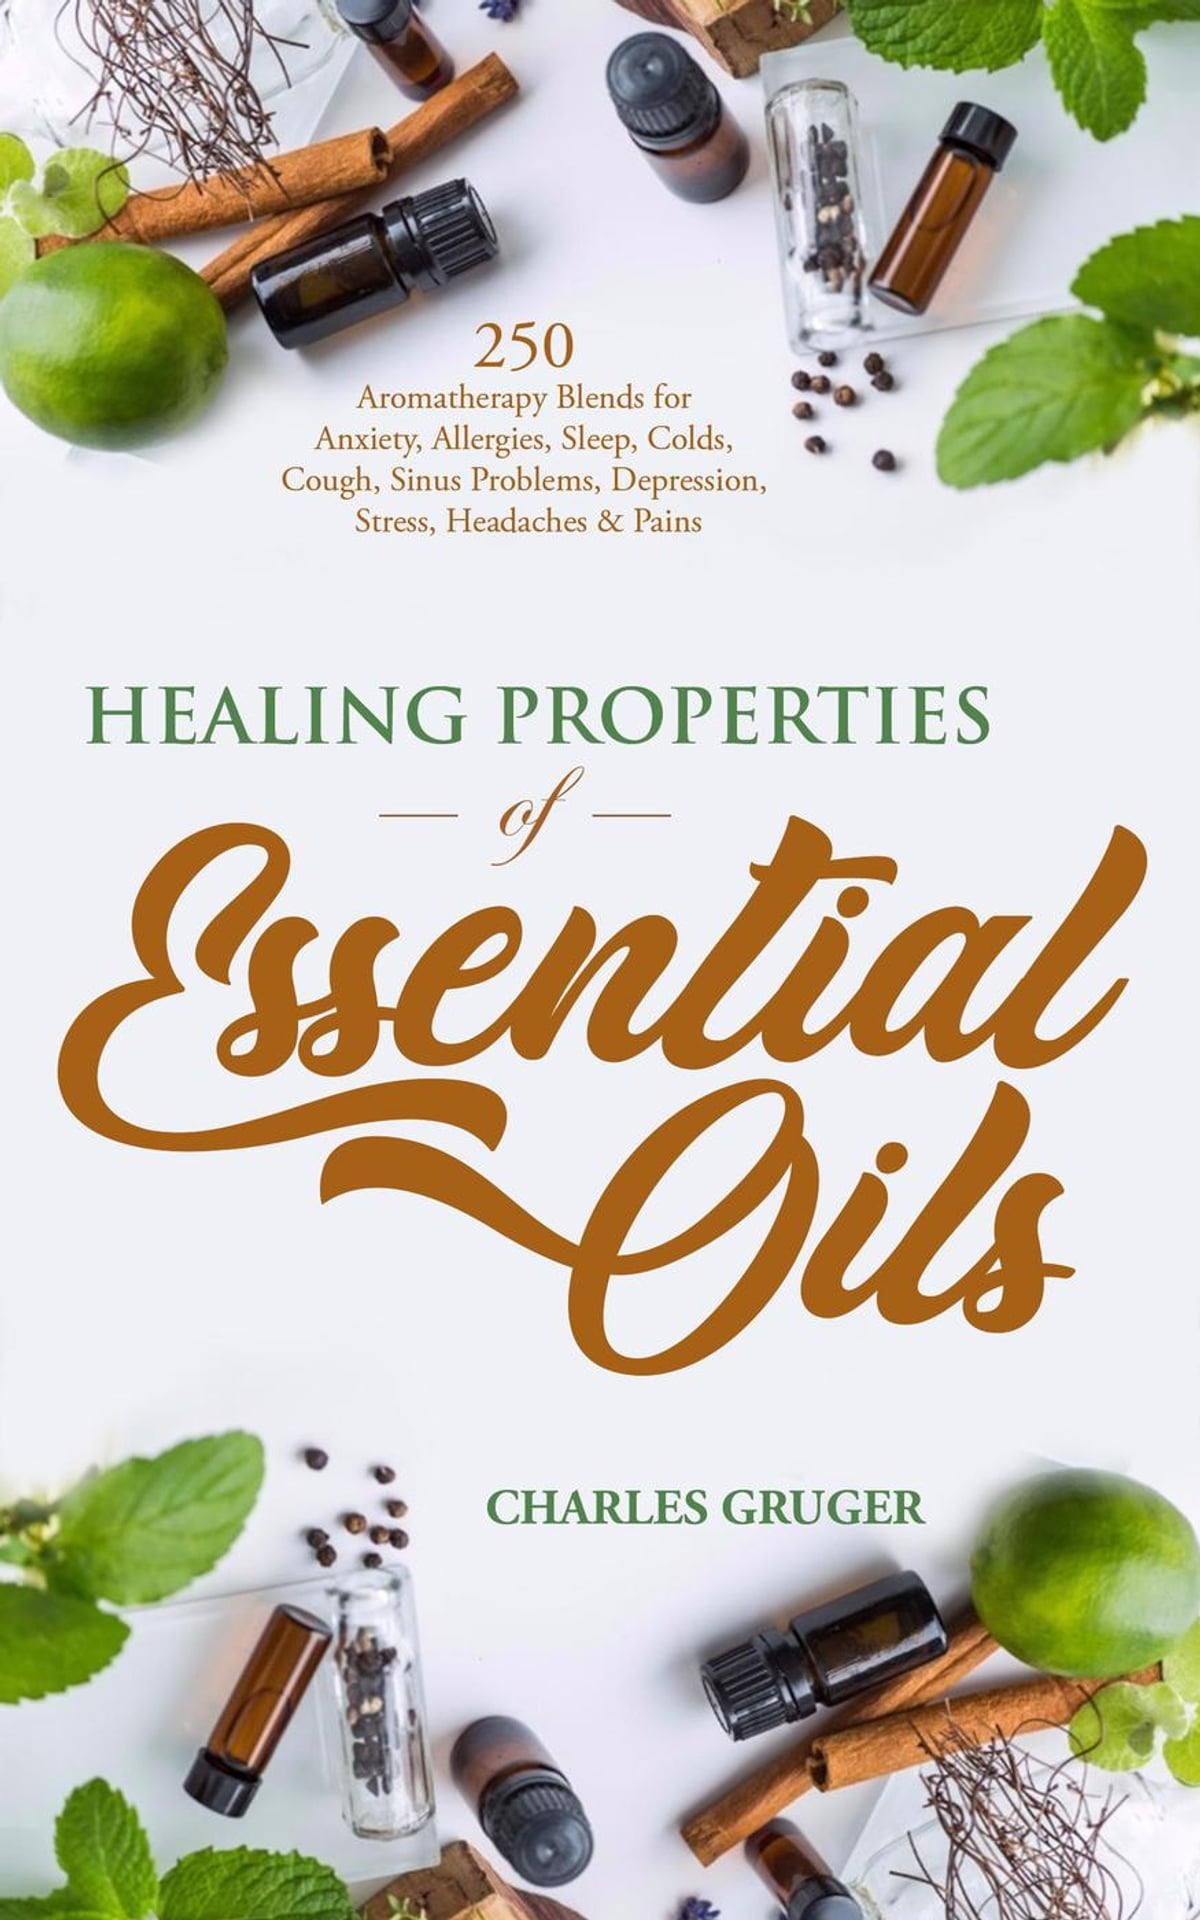 Healing Properties Of Essential Oils 250 Aromatherapy Blends For Anxiety Allergies Sleep Colds Cough Sinus Problems Depression Stress Headaches And Pains Ebook By Charles Gruger 9781386986799 Rakuten Kobo Greece